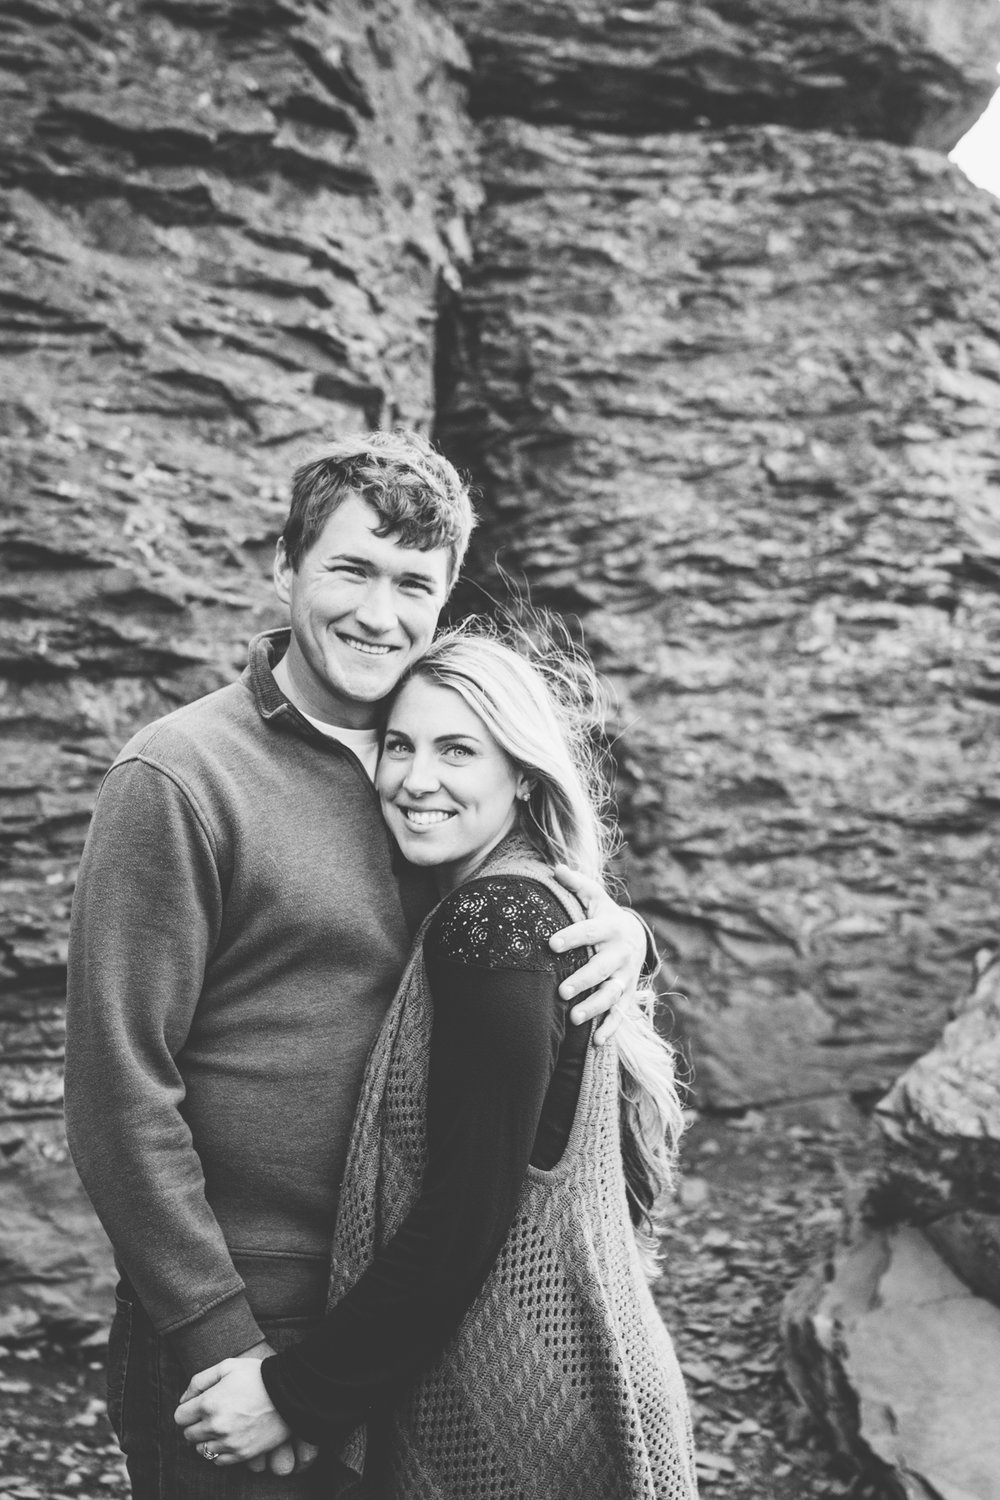 josh and anna | adventurous anniversary shoot | George washington | Christi Childs photography  (82 of 101).jpg